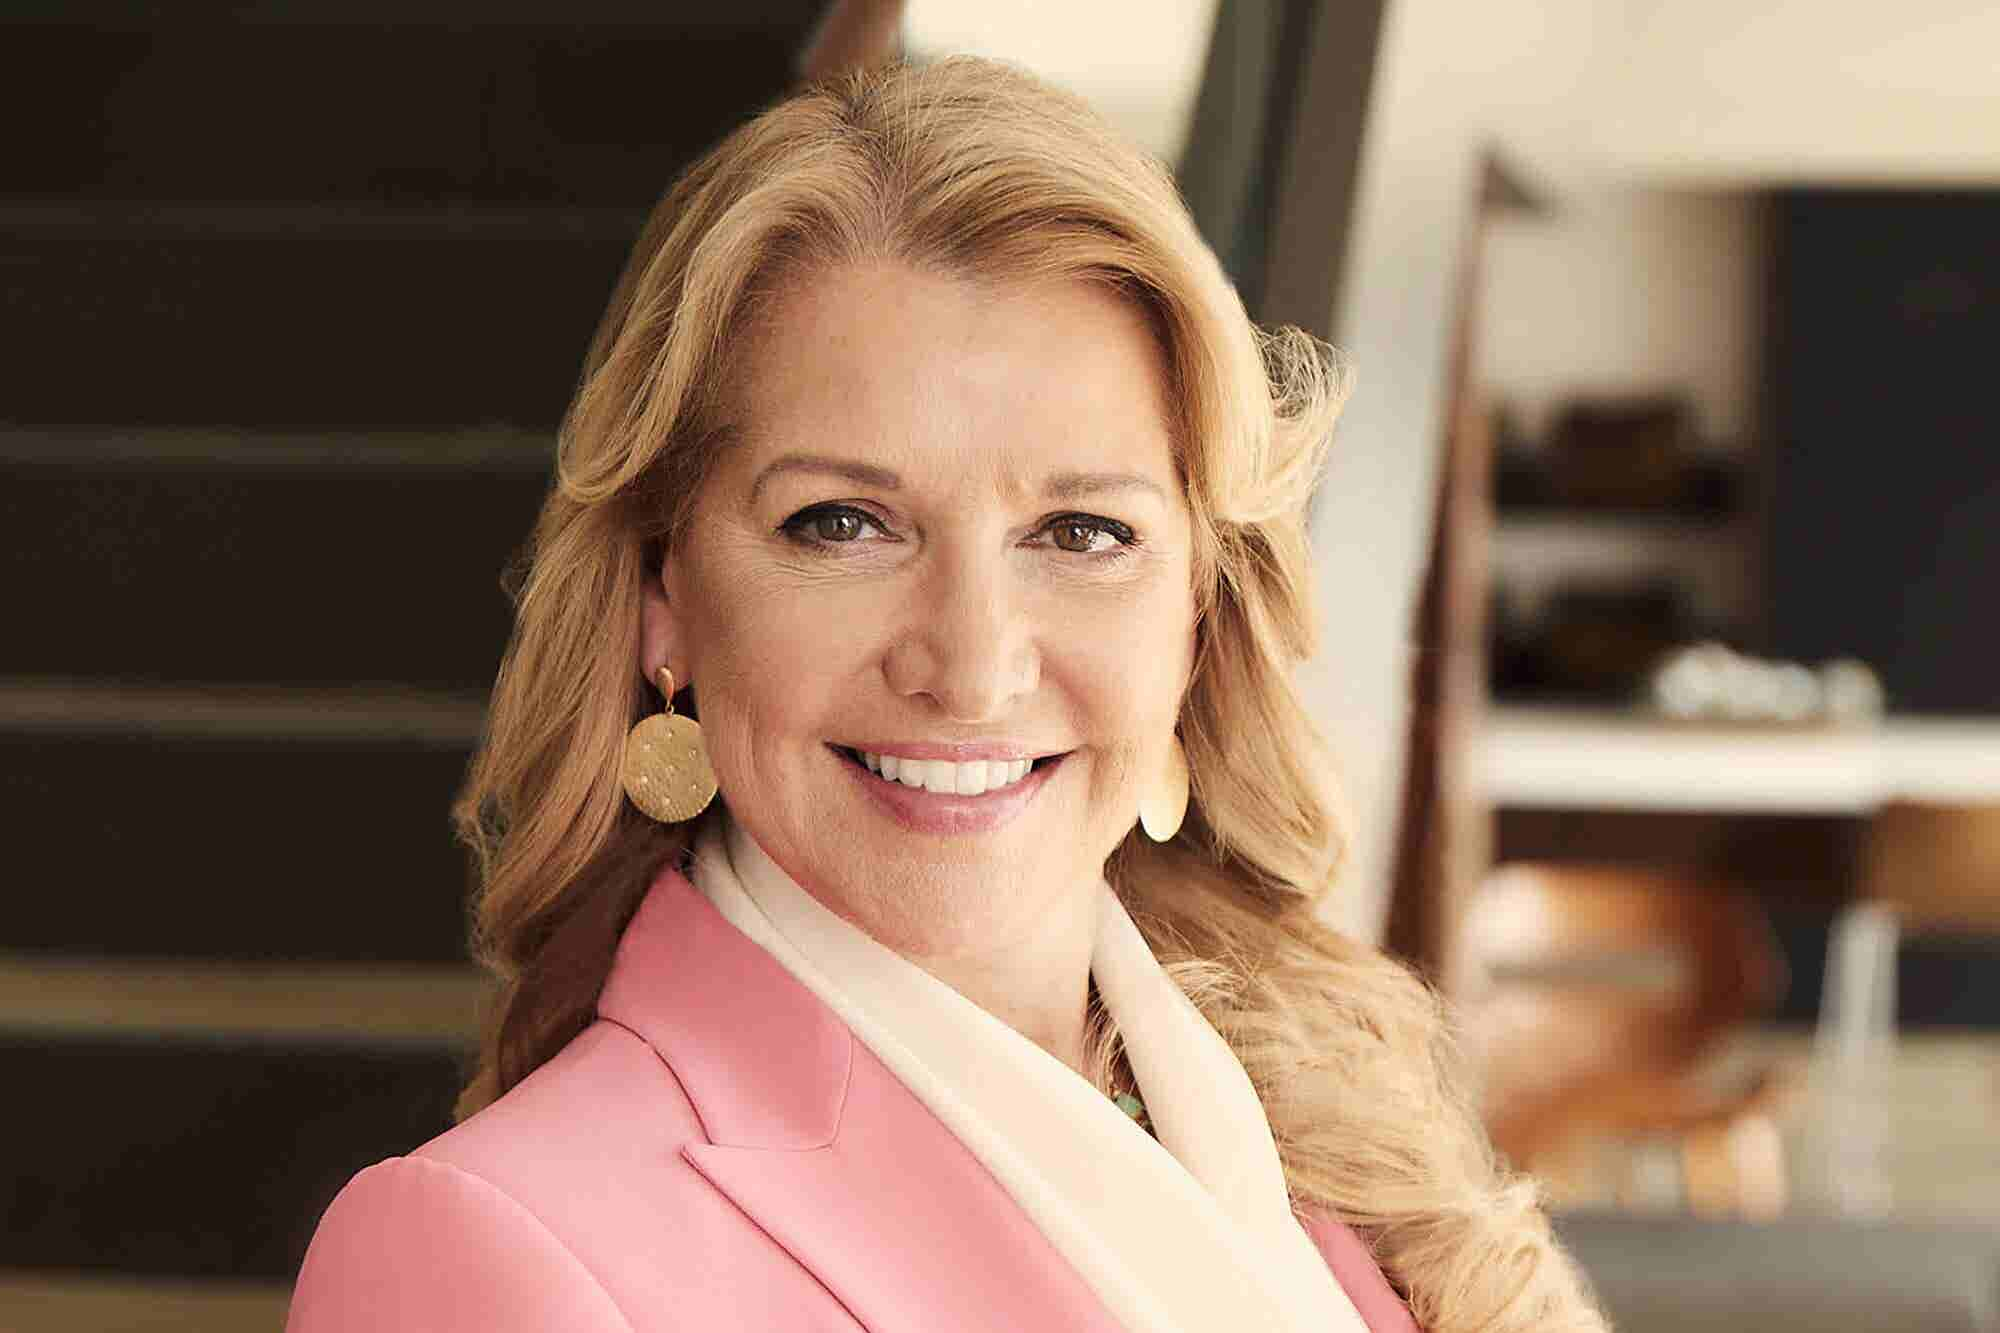 WW (Formerly Weight Watchers) CEO Mindy Grossman Shares Her Key to Business Success